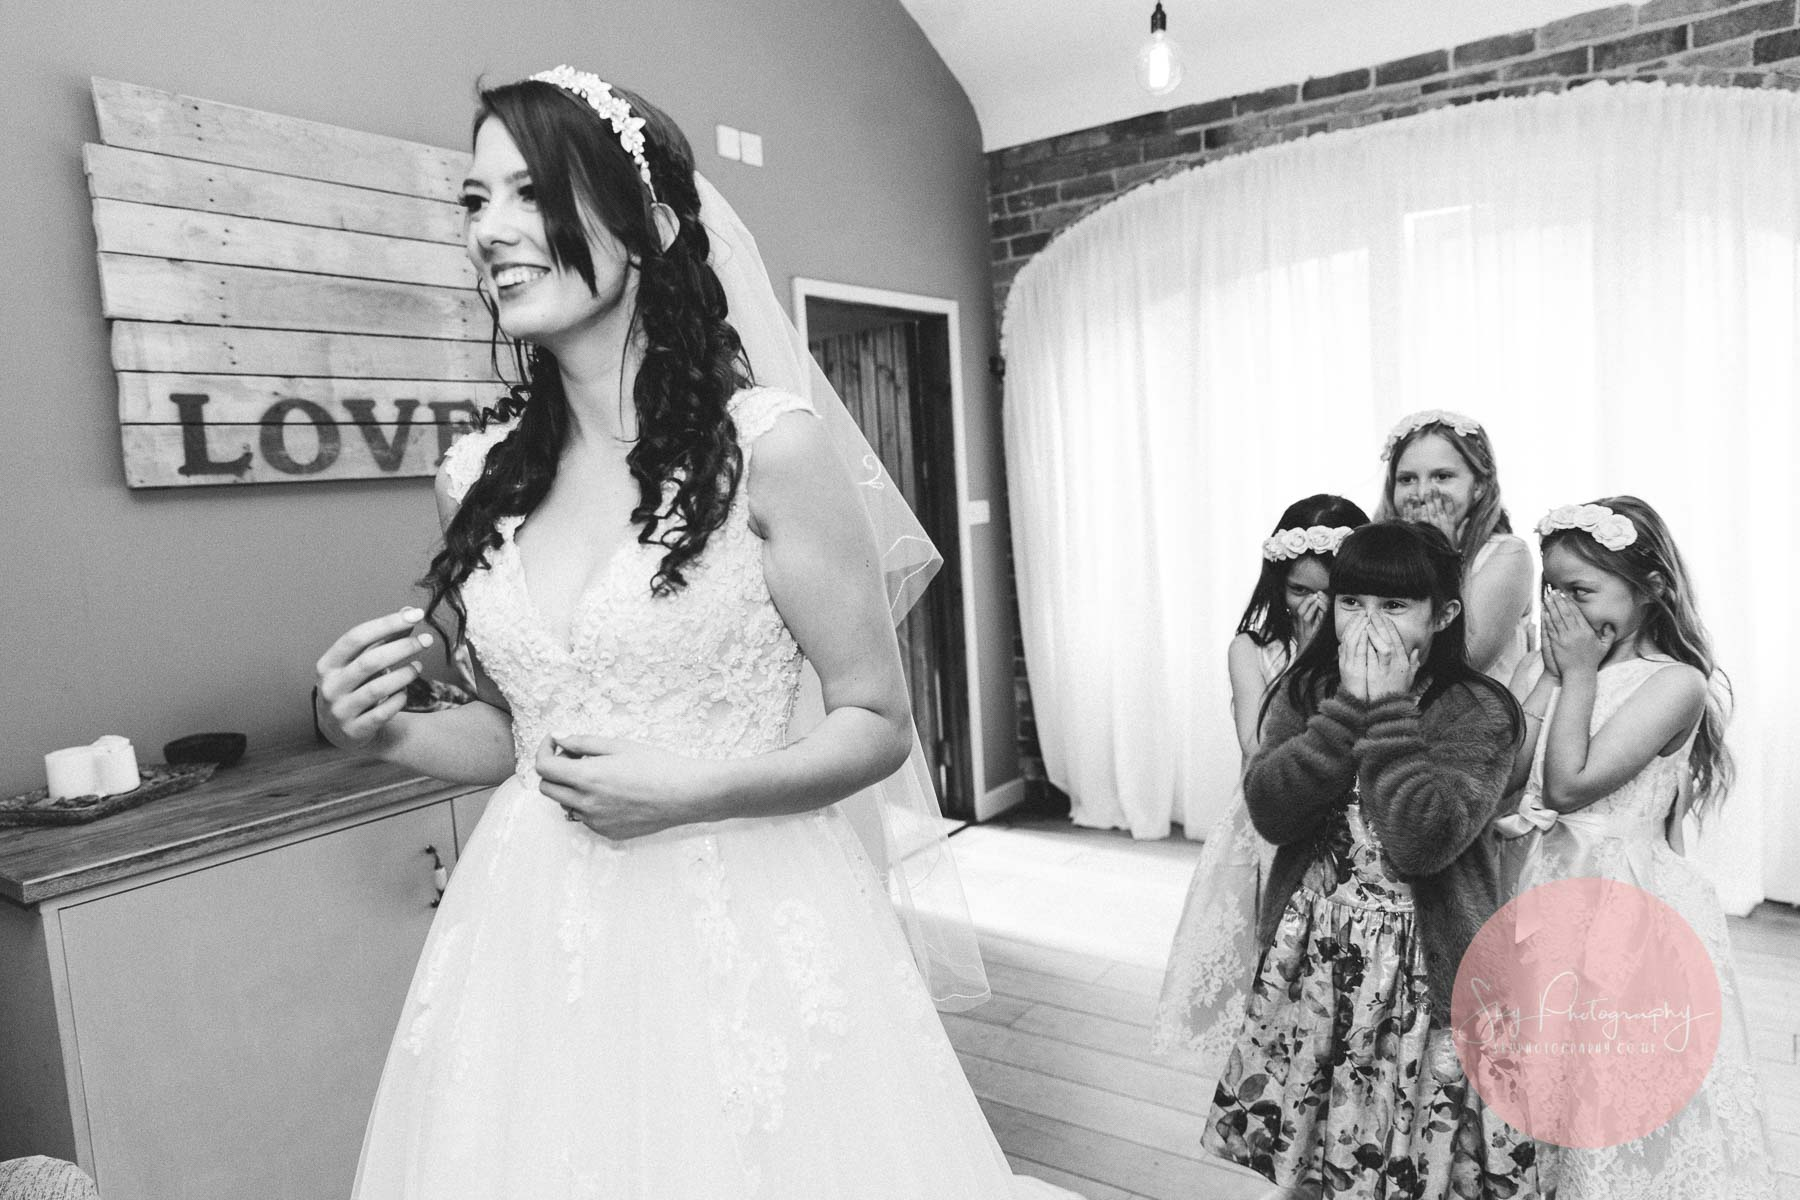 flower girls looking emotional as the bride gets ready